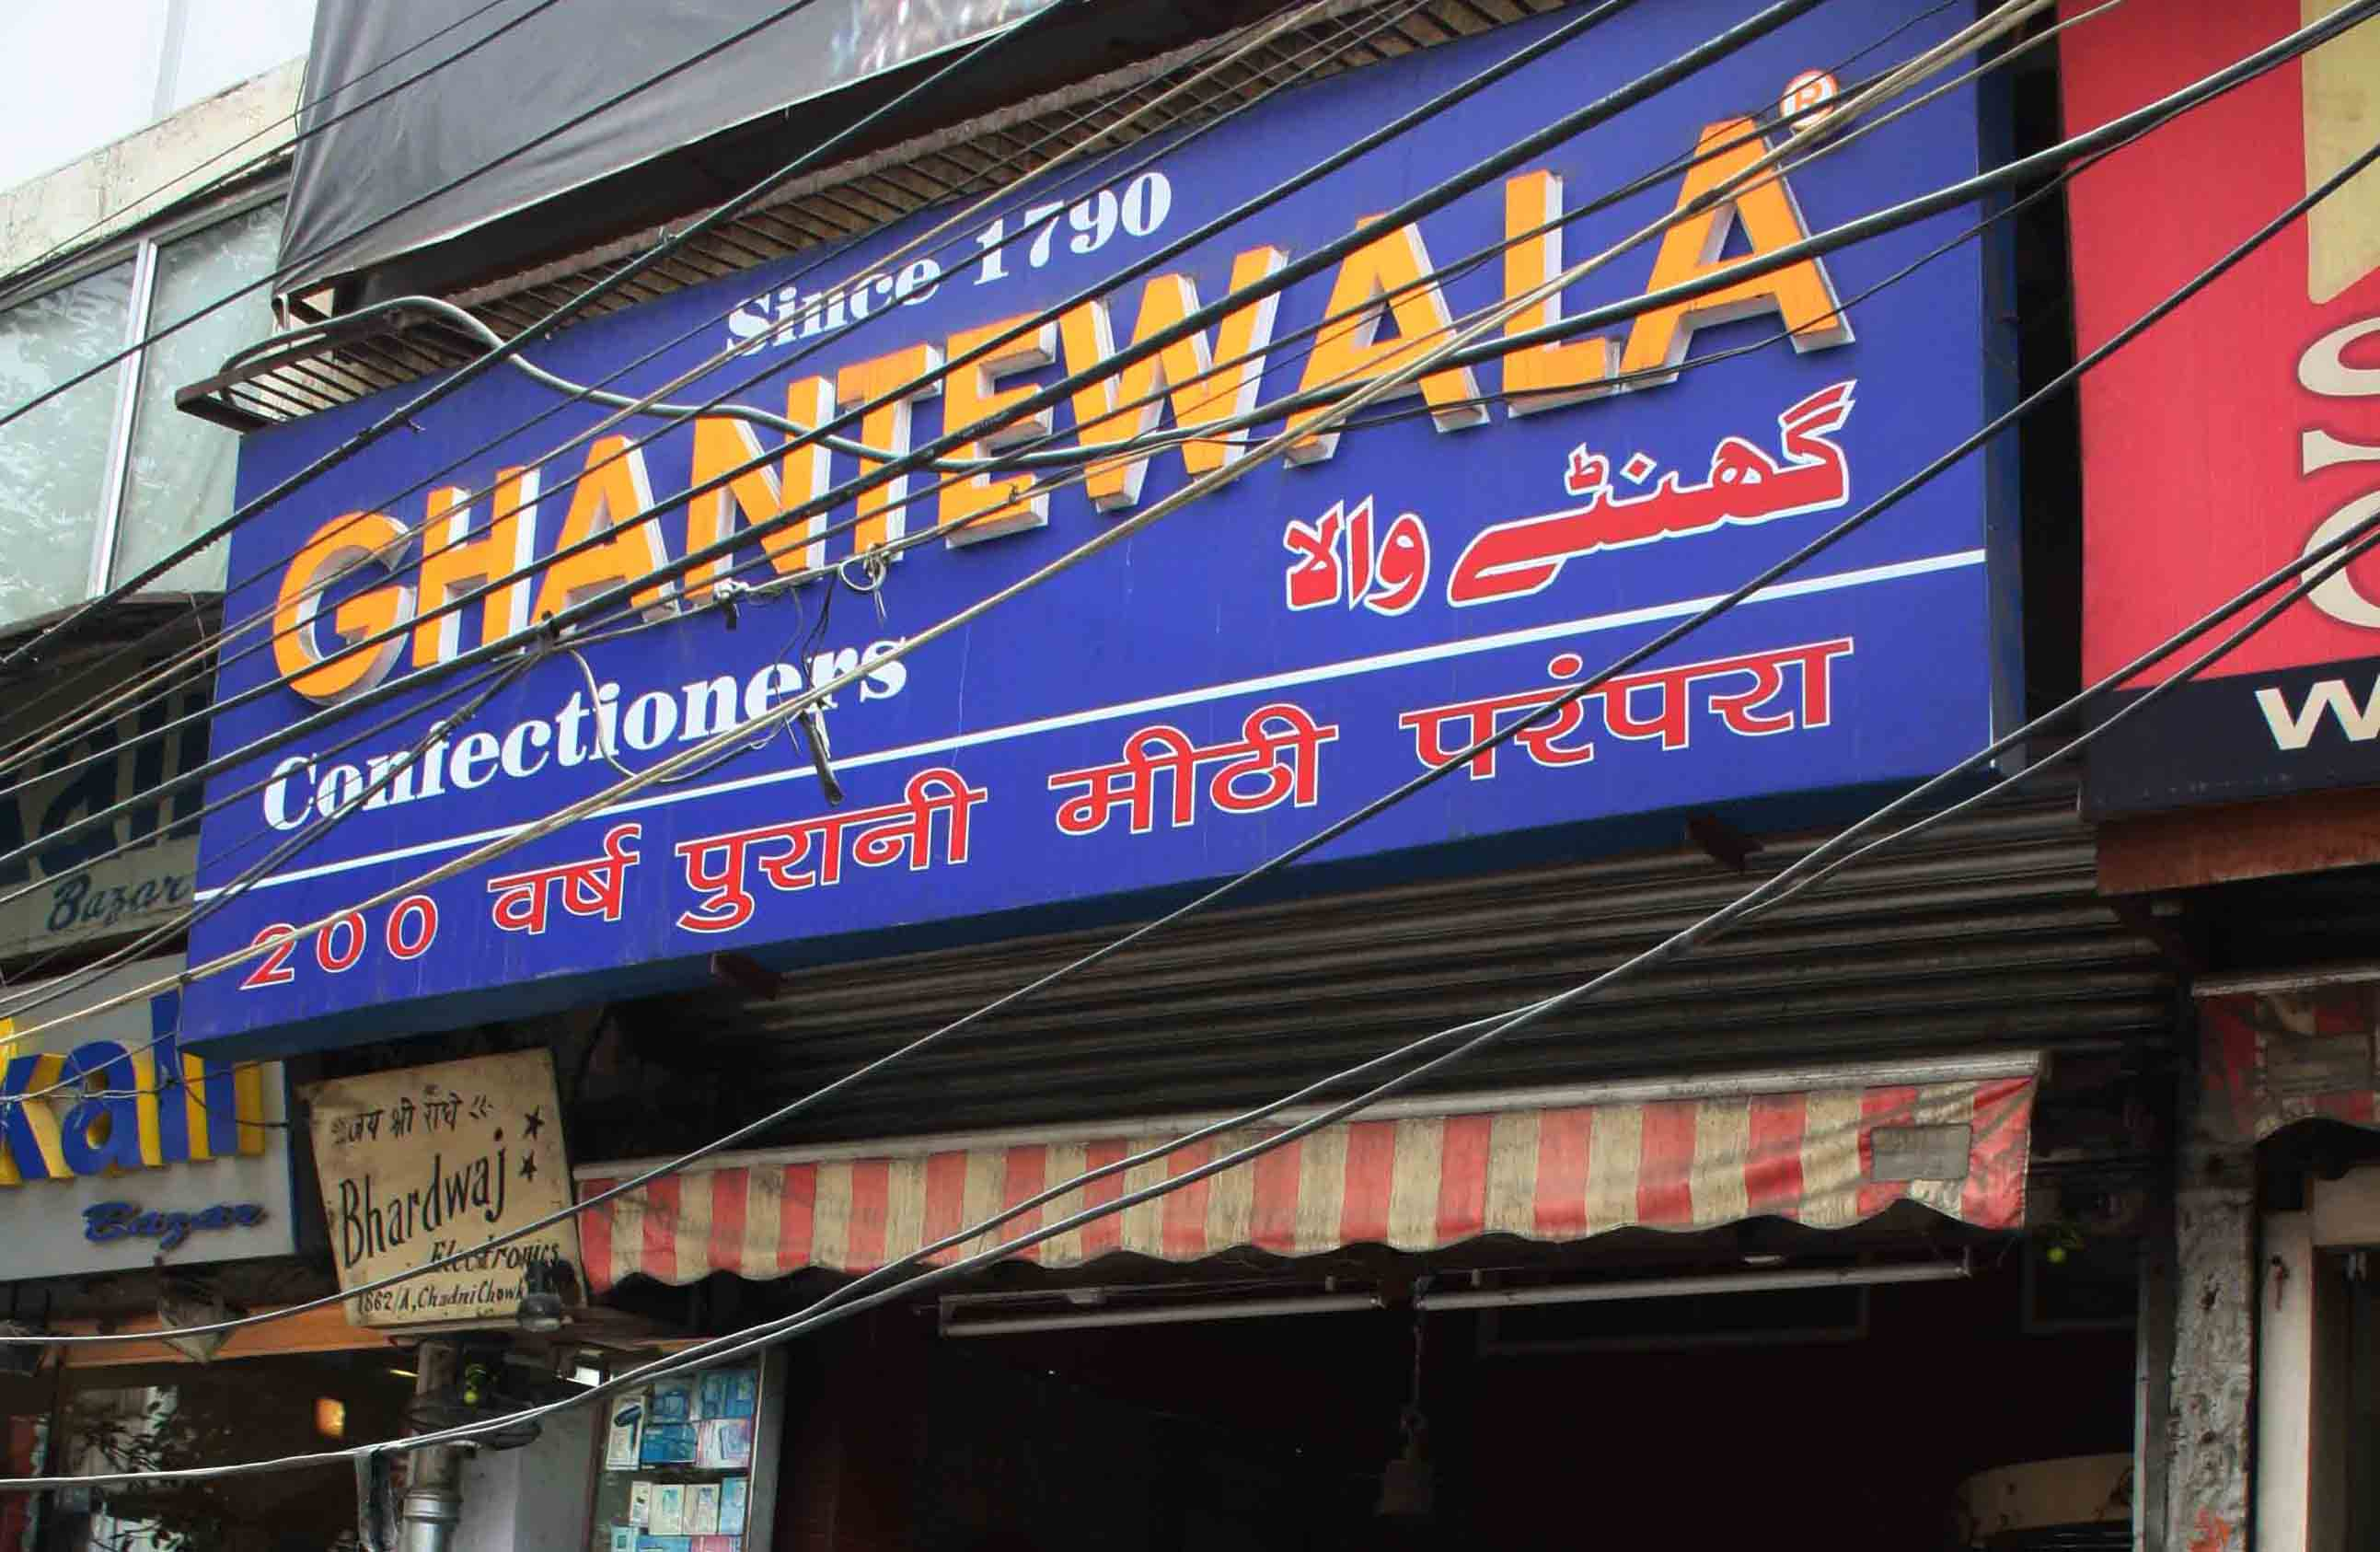 City Obituary - Ghantewala Confectioners (1790-2015), Chandni Chowk